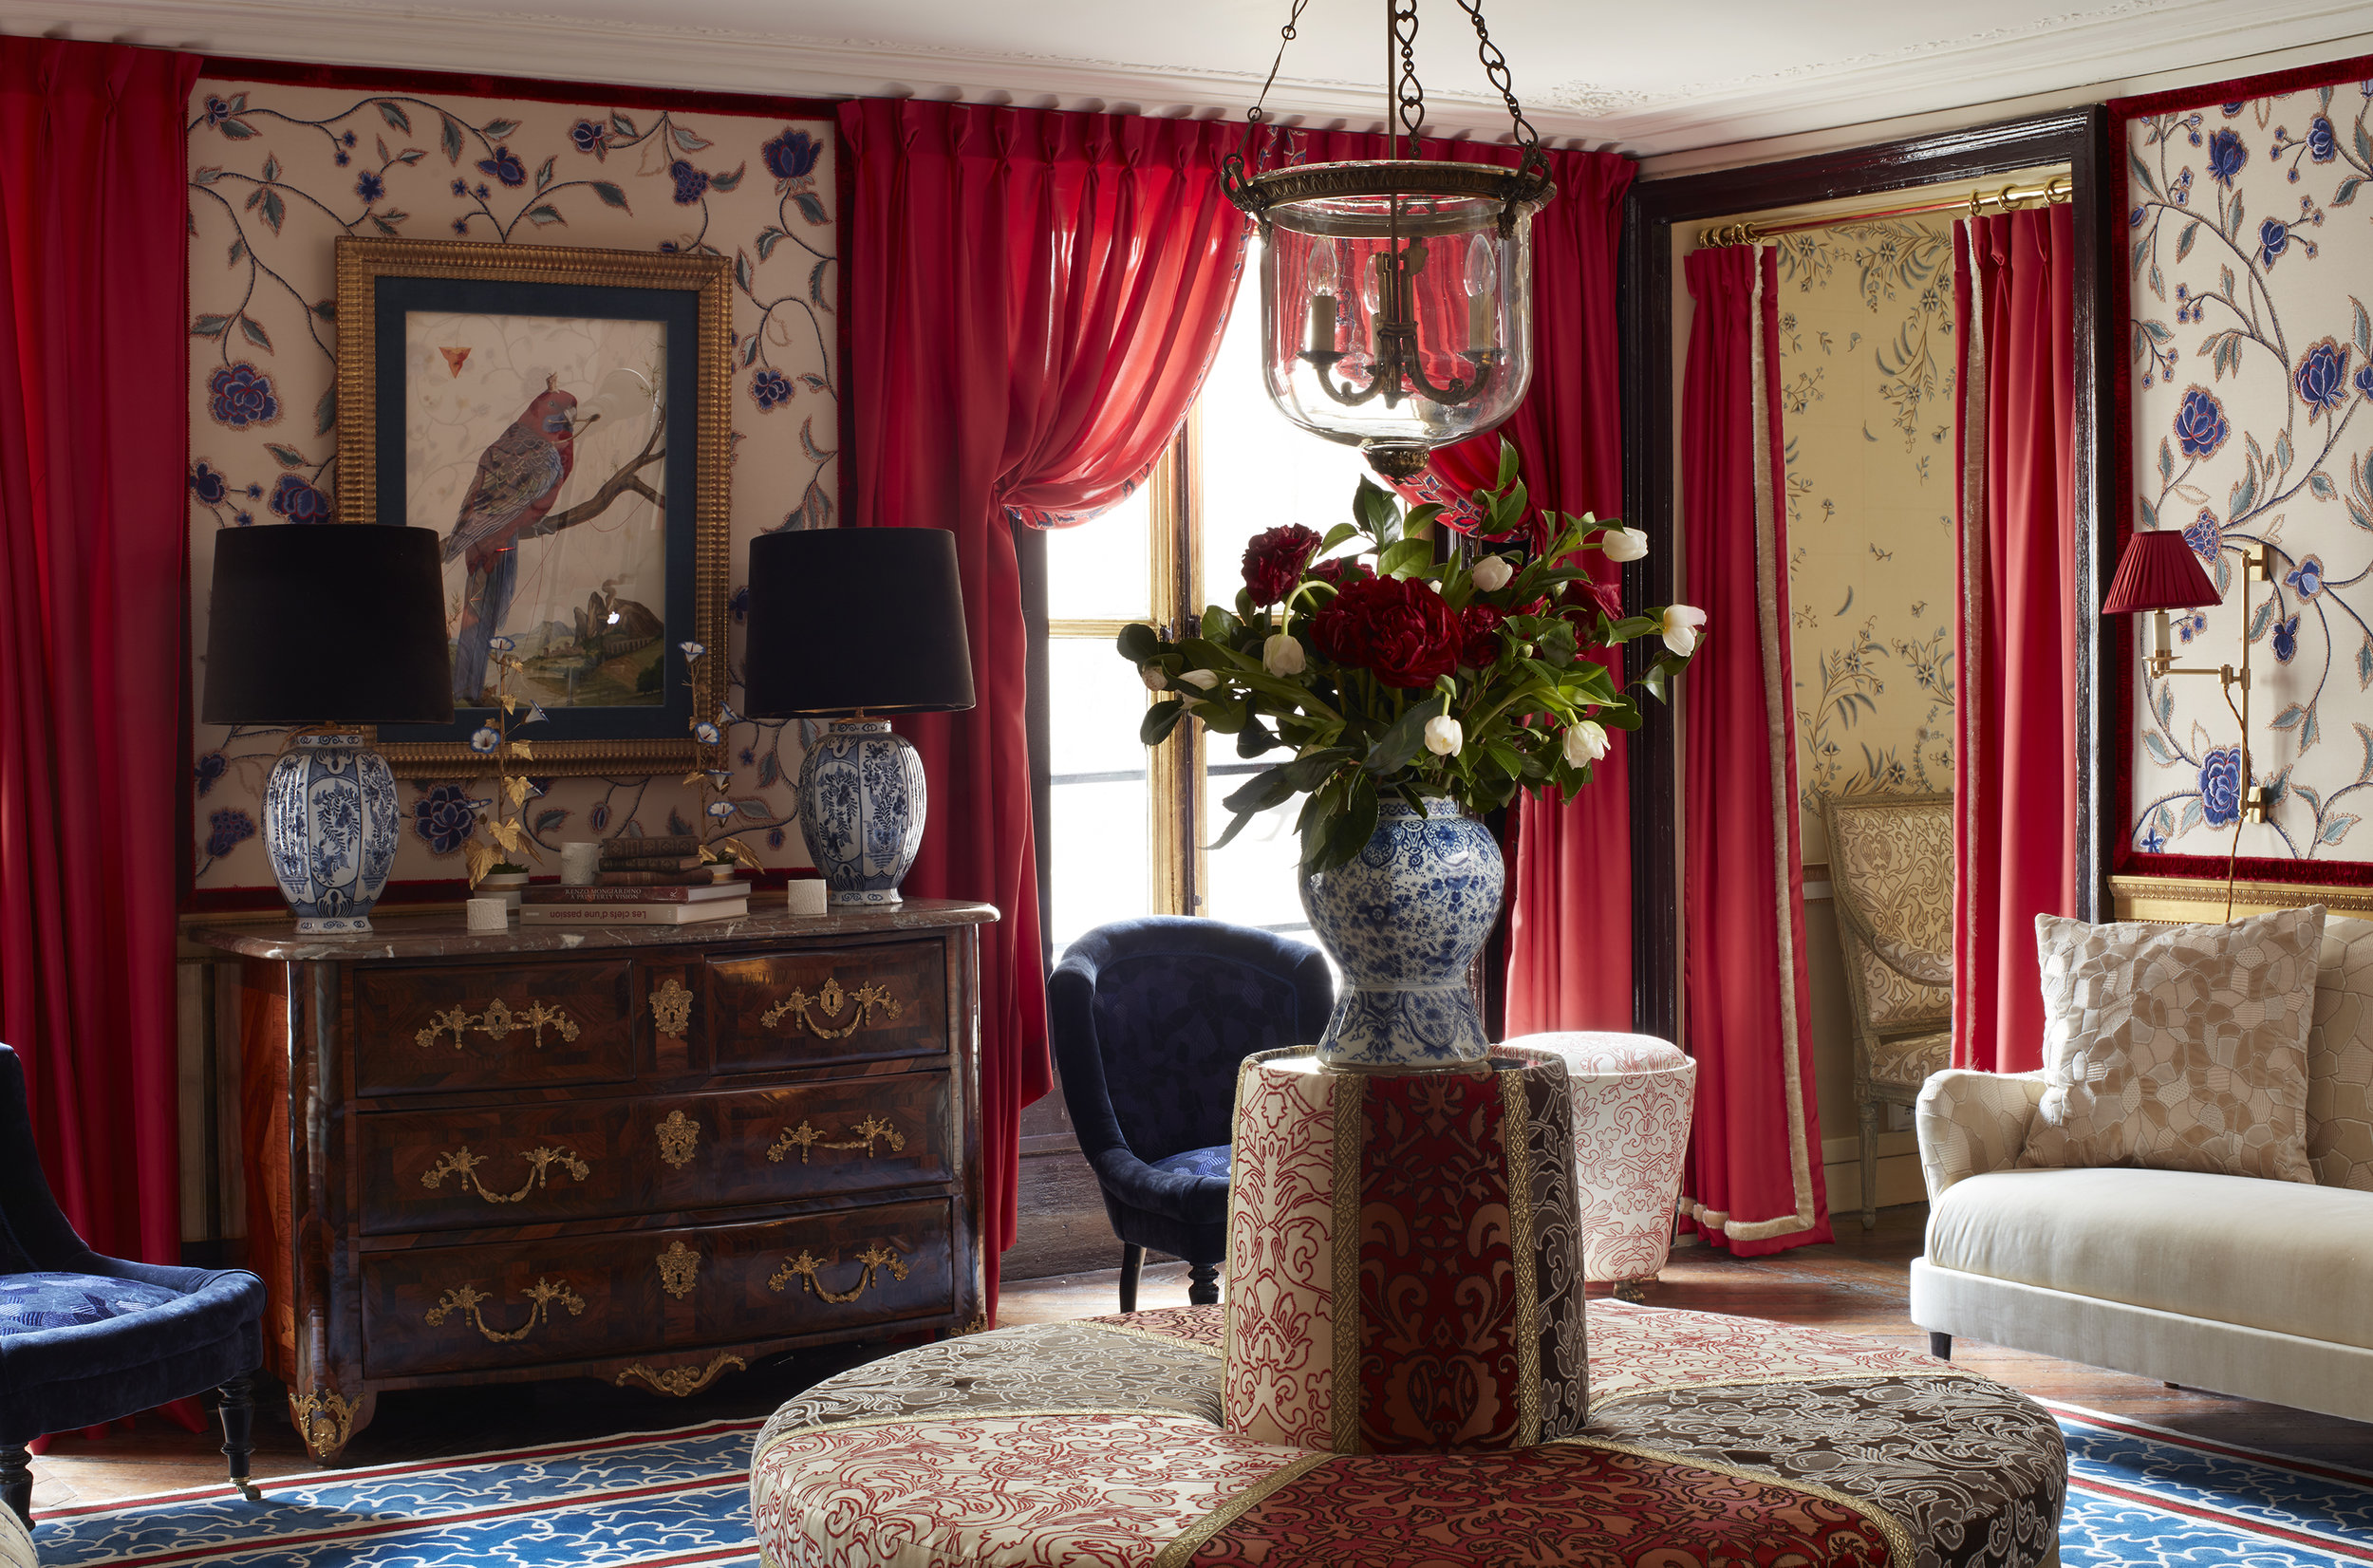 de Gournay hand embroidered 'Flora' wallcovering and 'Sarafan' hand embroidered damask from Salon Privé by Alessandra Branca. Photo credit: Simon Upton